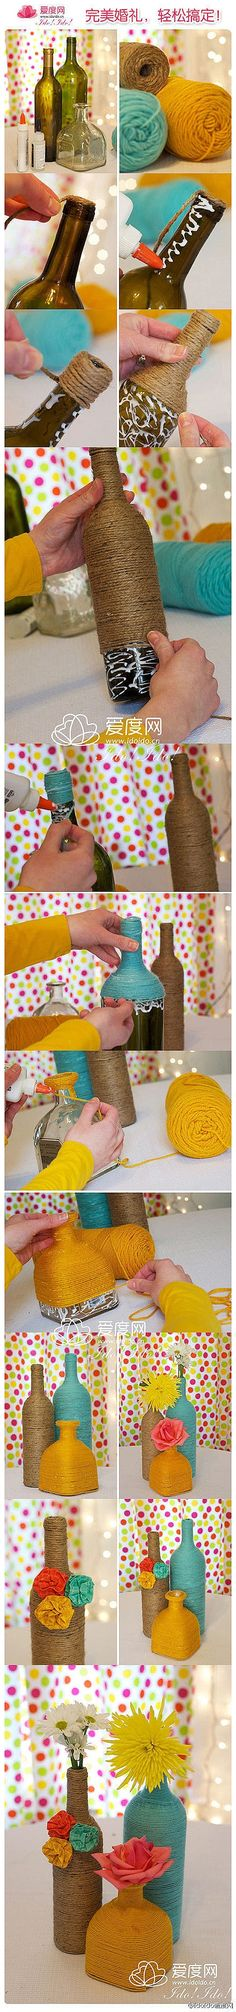 DIY Yarn Bottle Vase